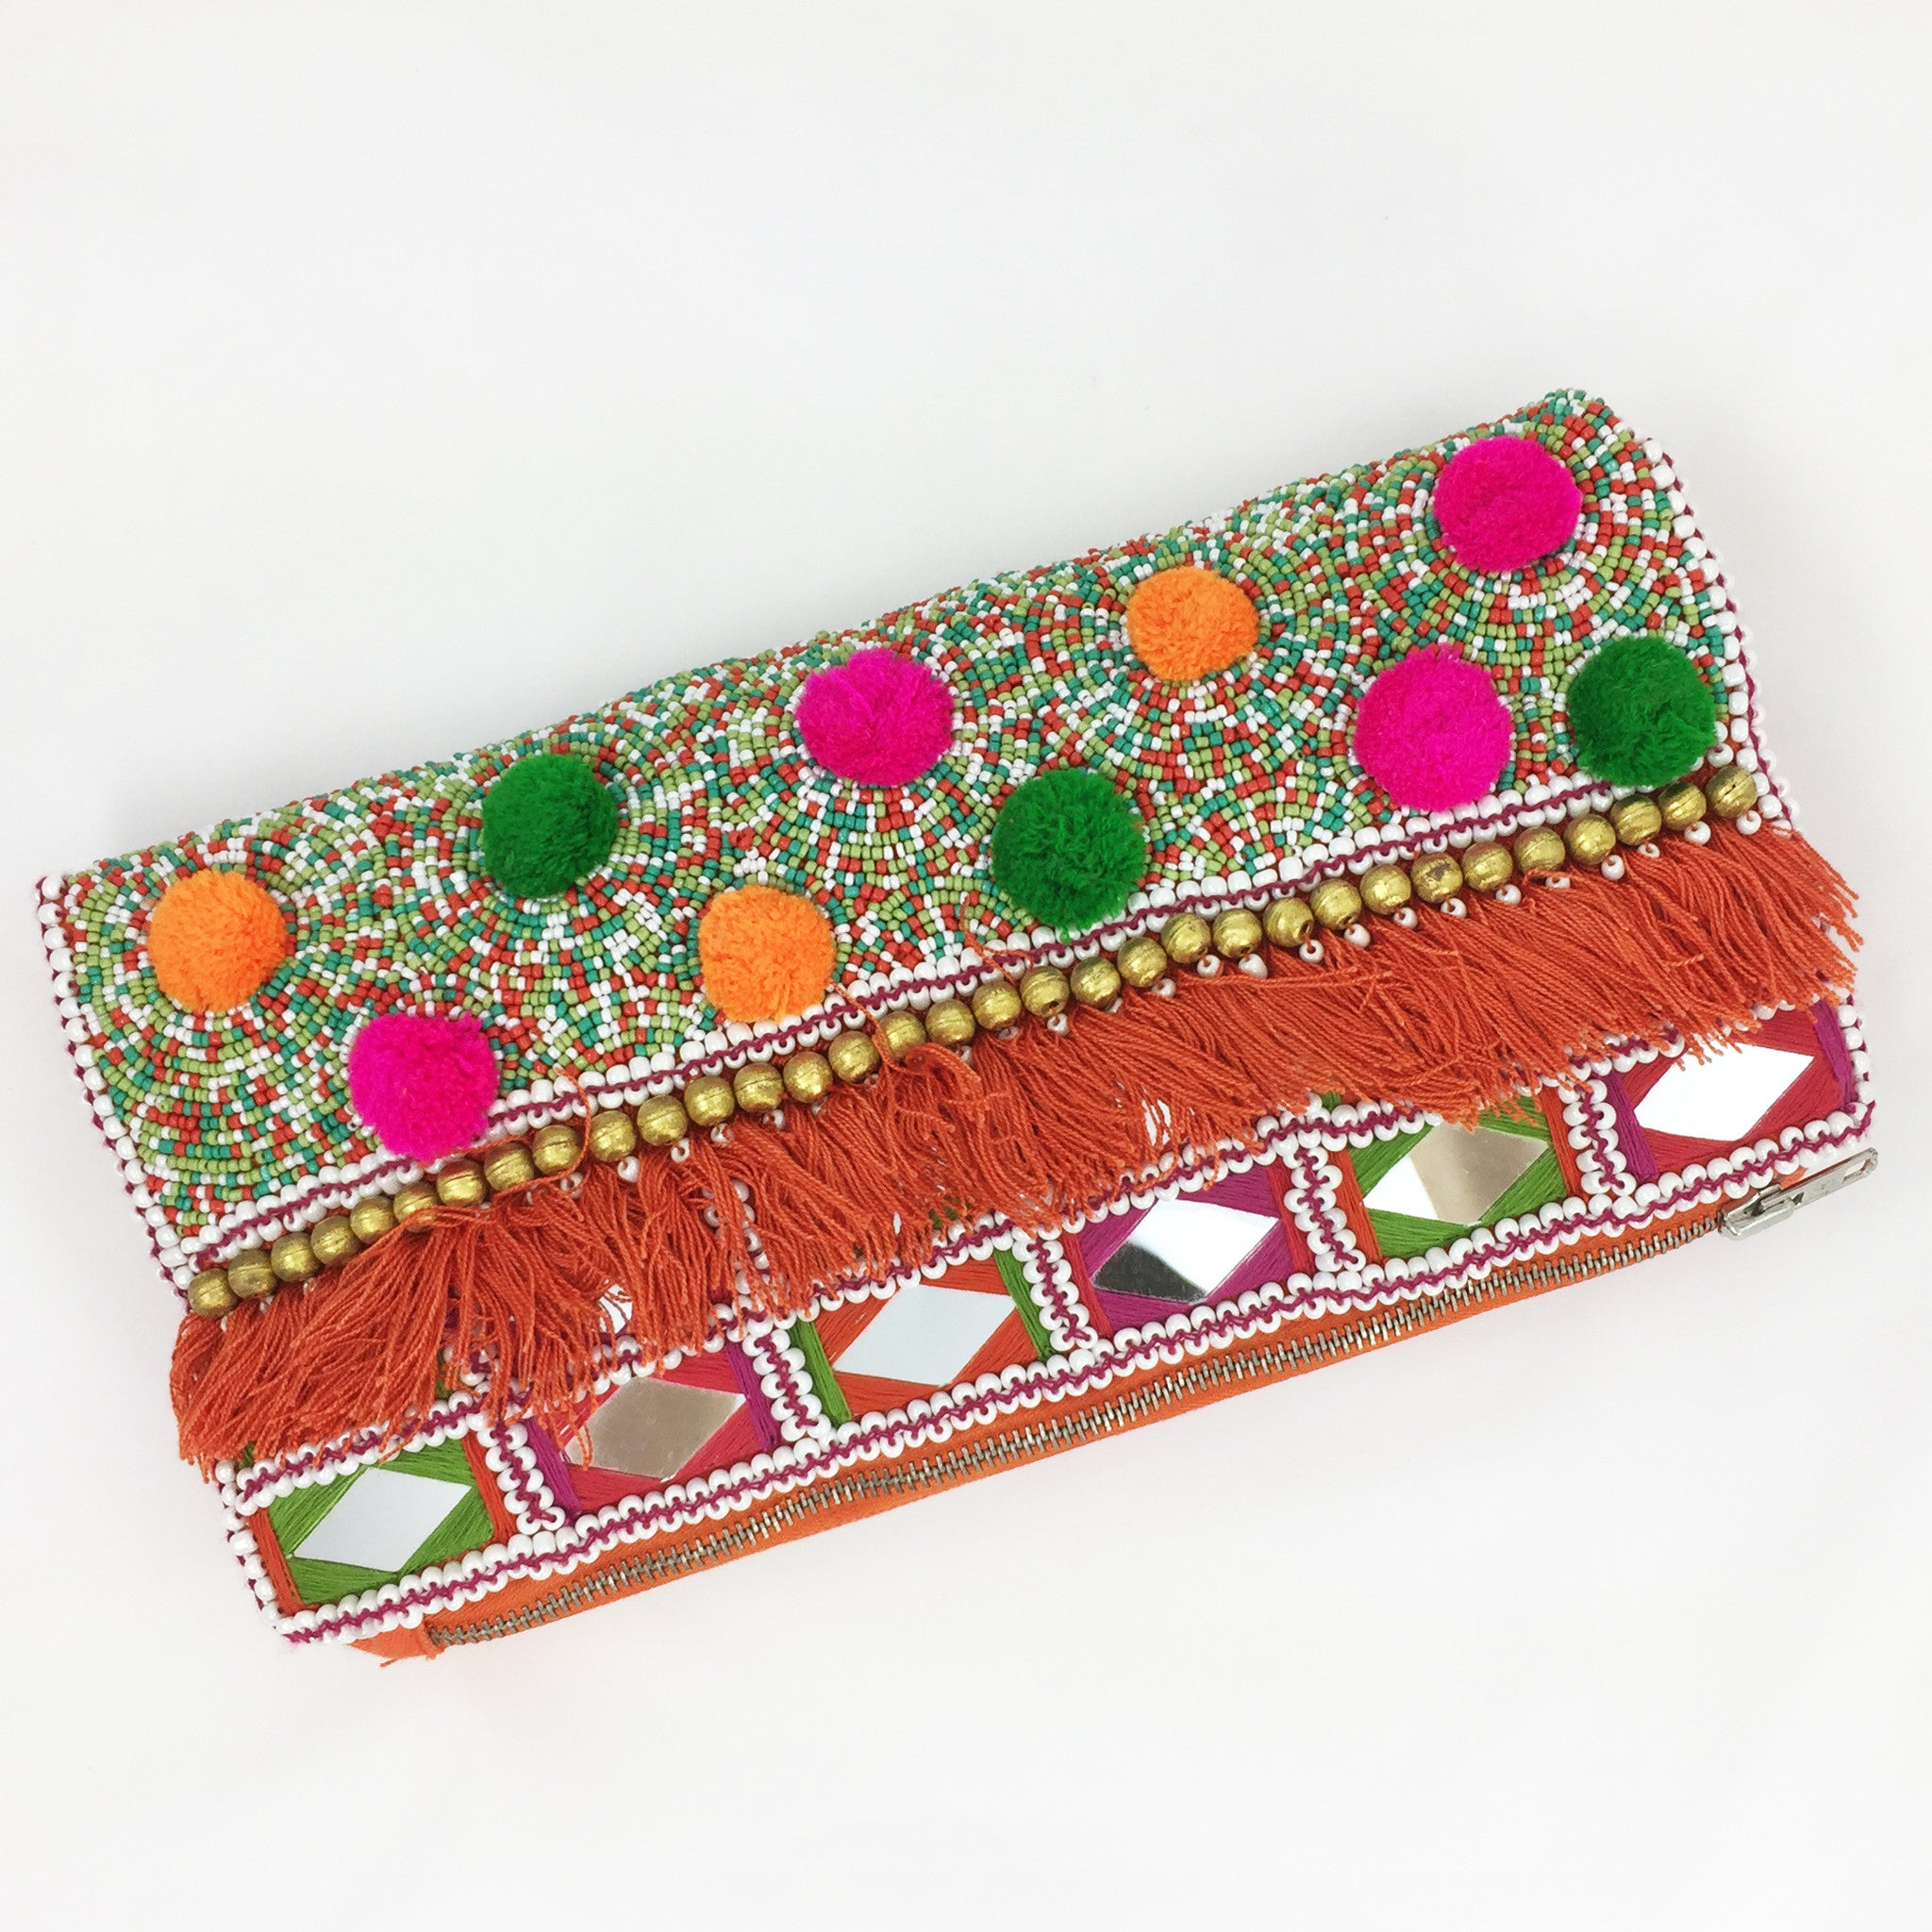 Beaded Envelop Clutch - Coral